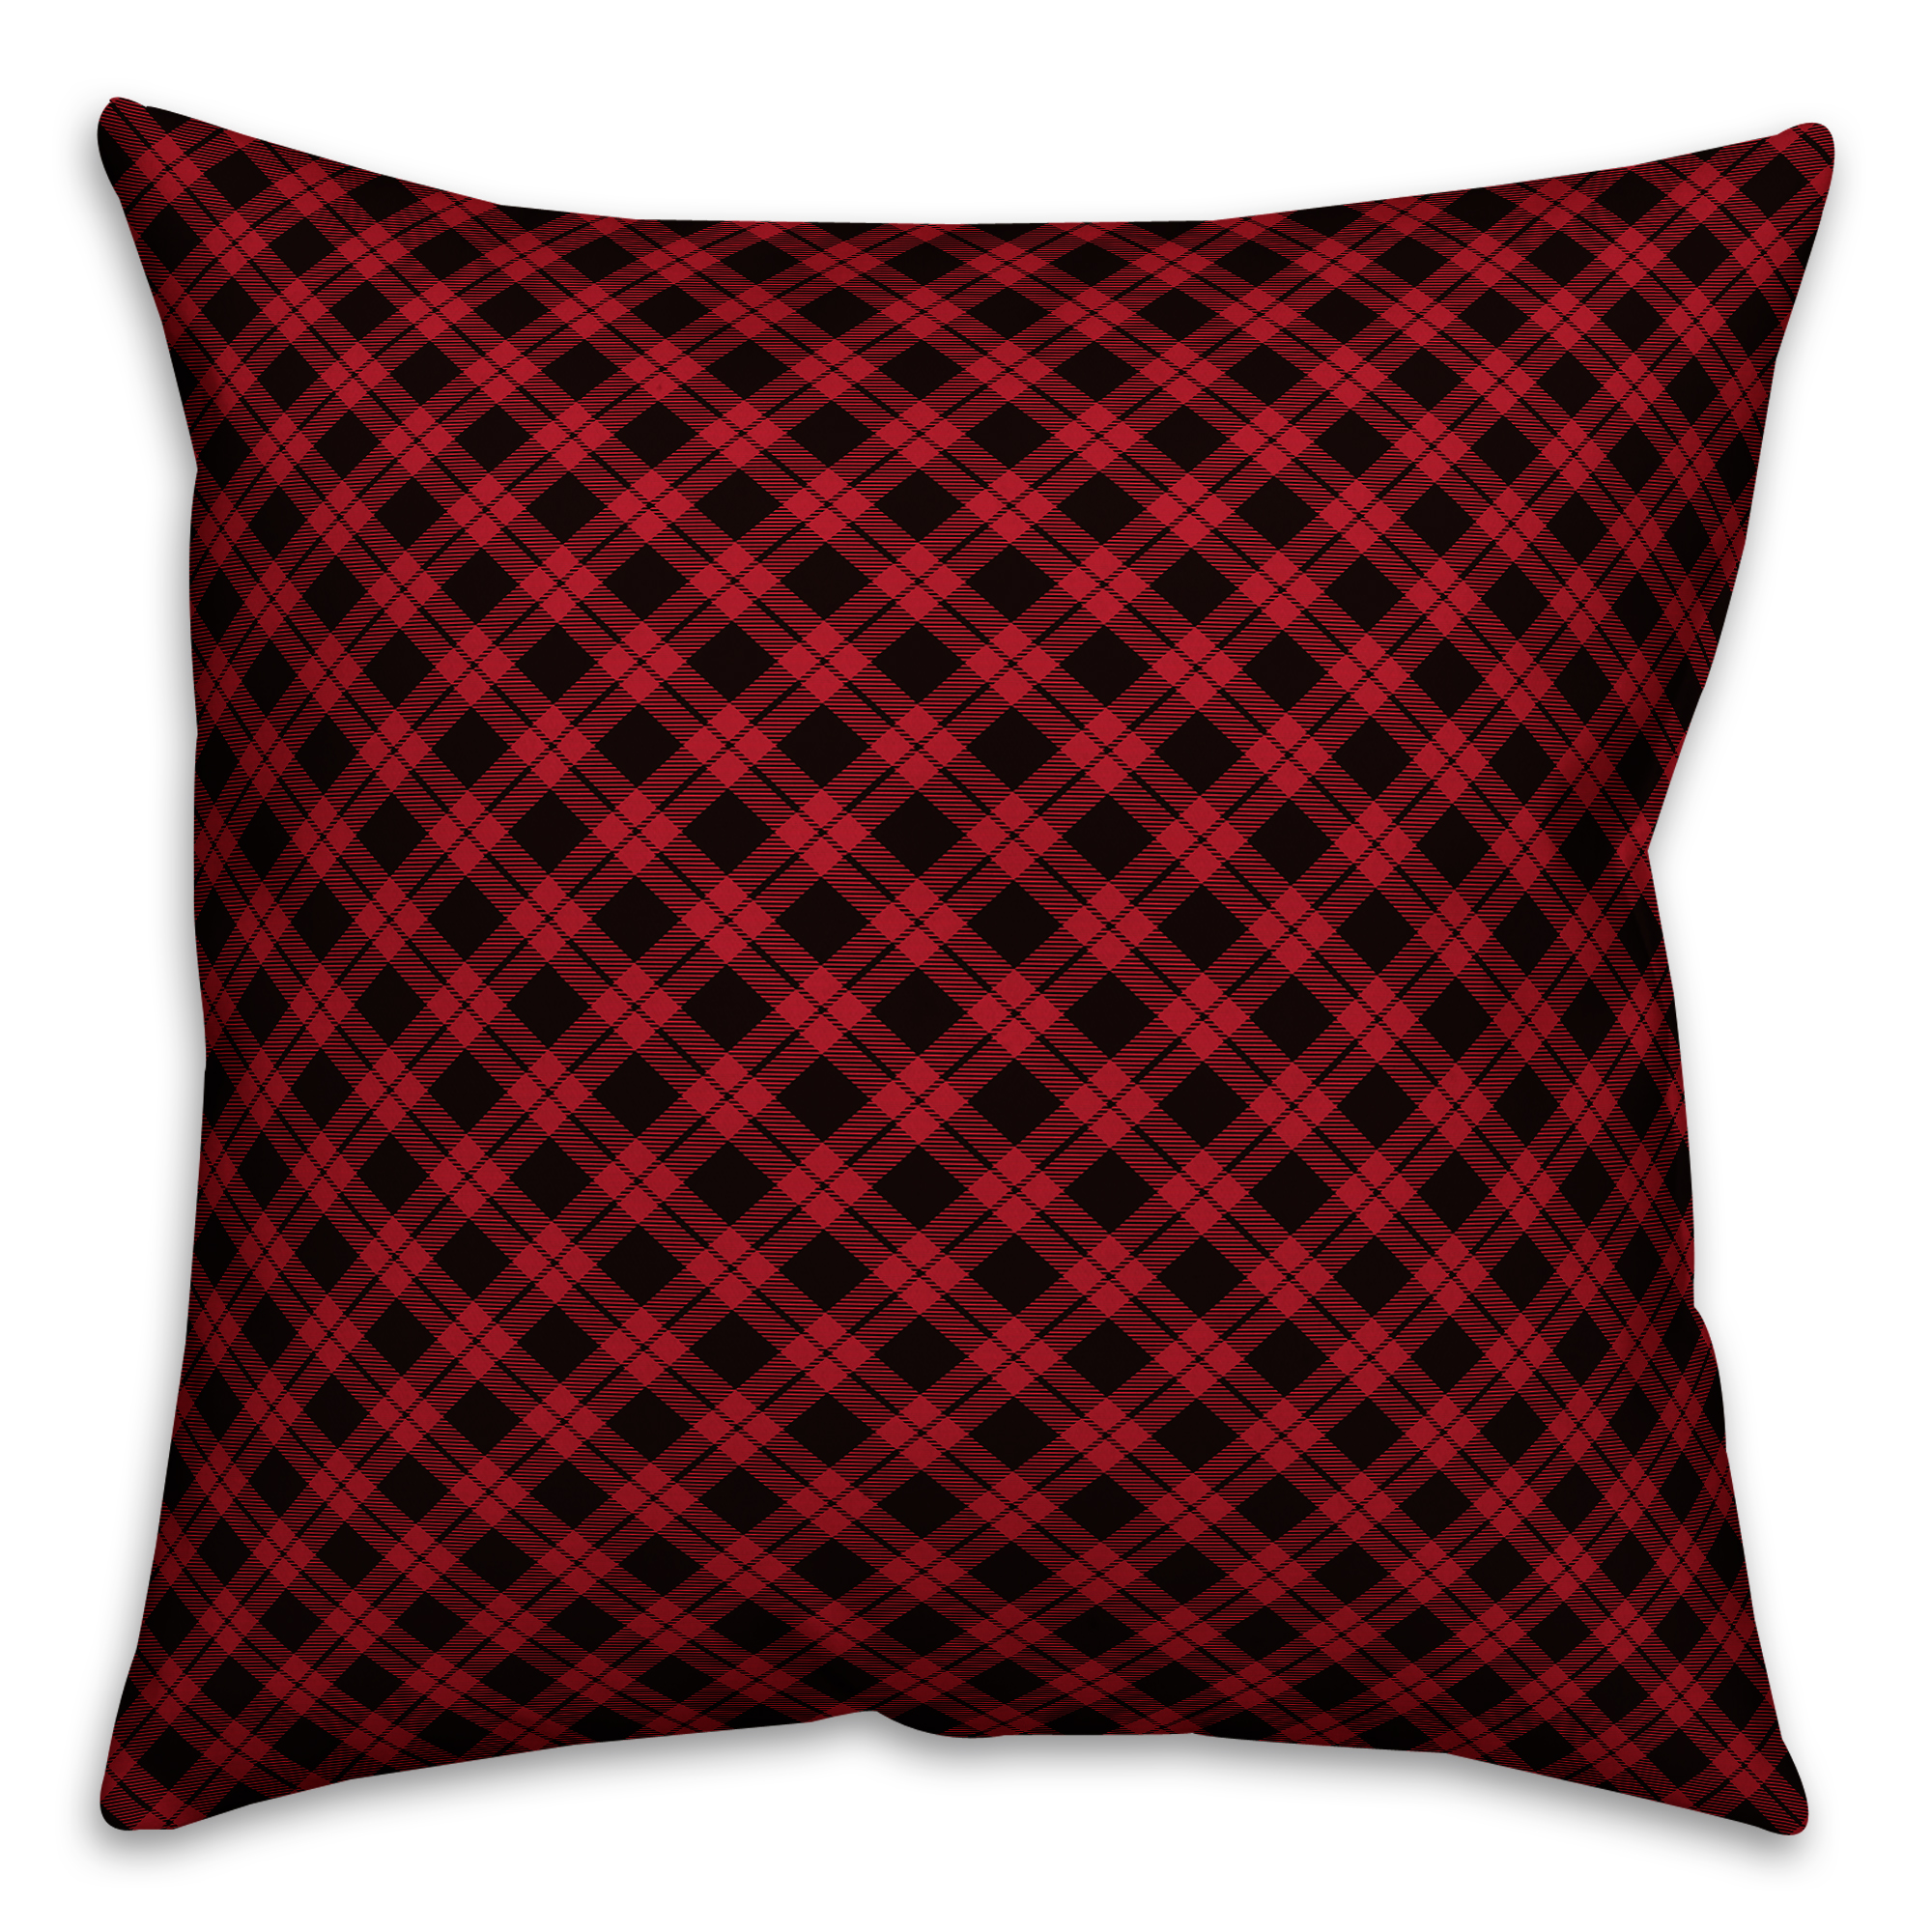 Red and Black Gingham Buffalo Check Plaid 20x20 Spun Poly Pillow Cover